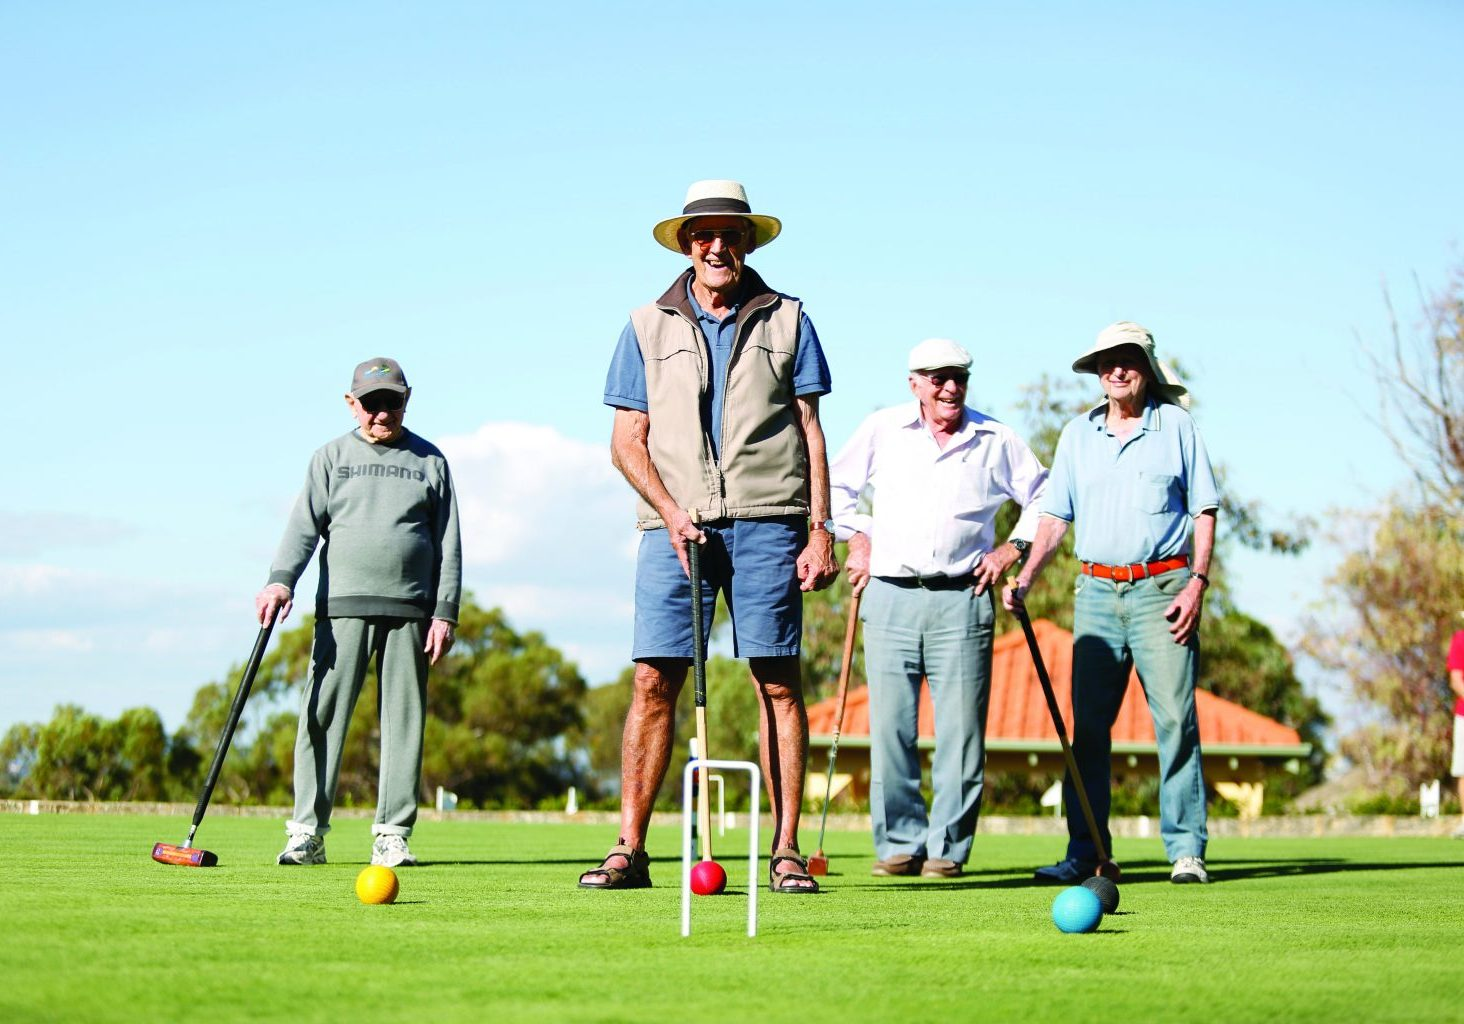 a group of men over 55 play lawn bowls for exercise.